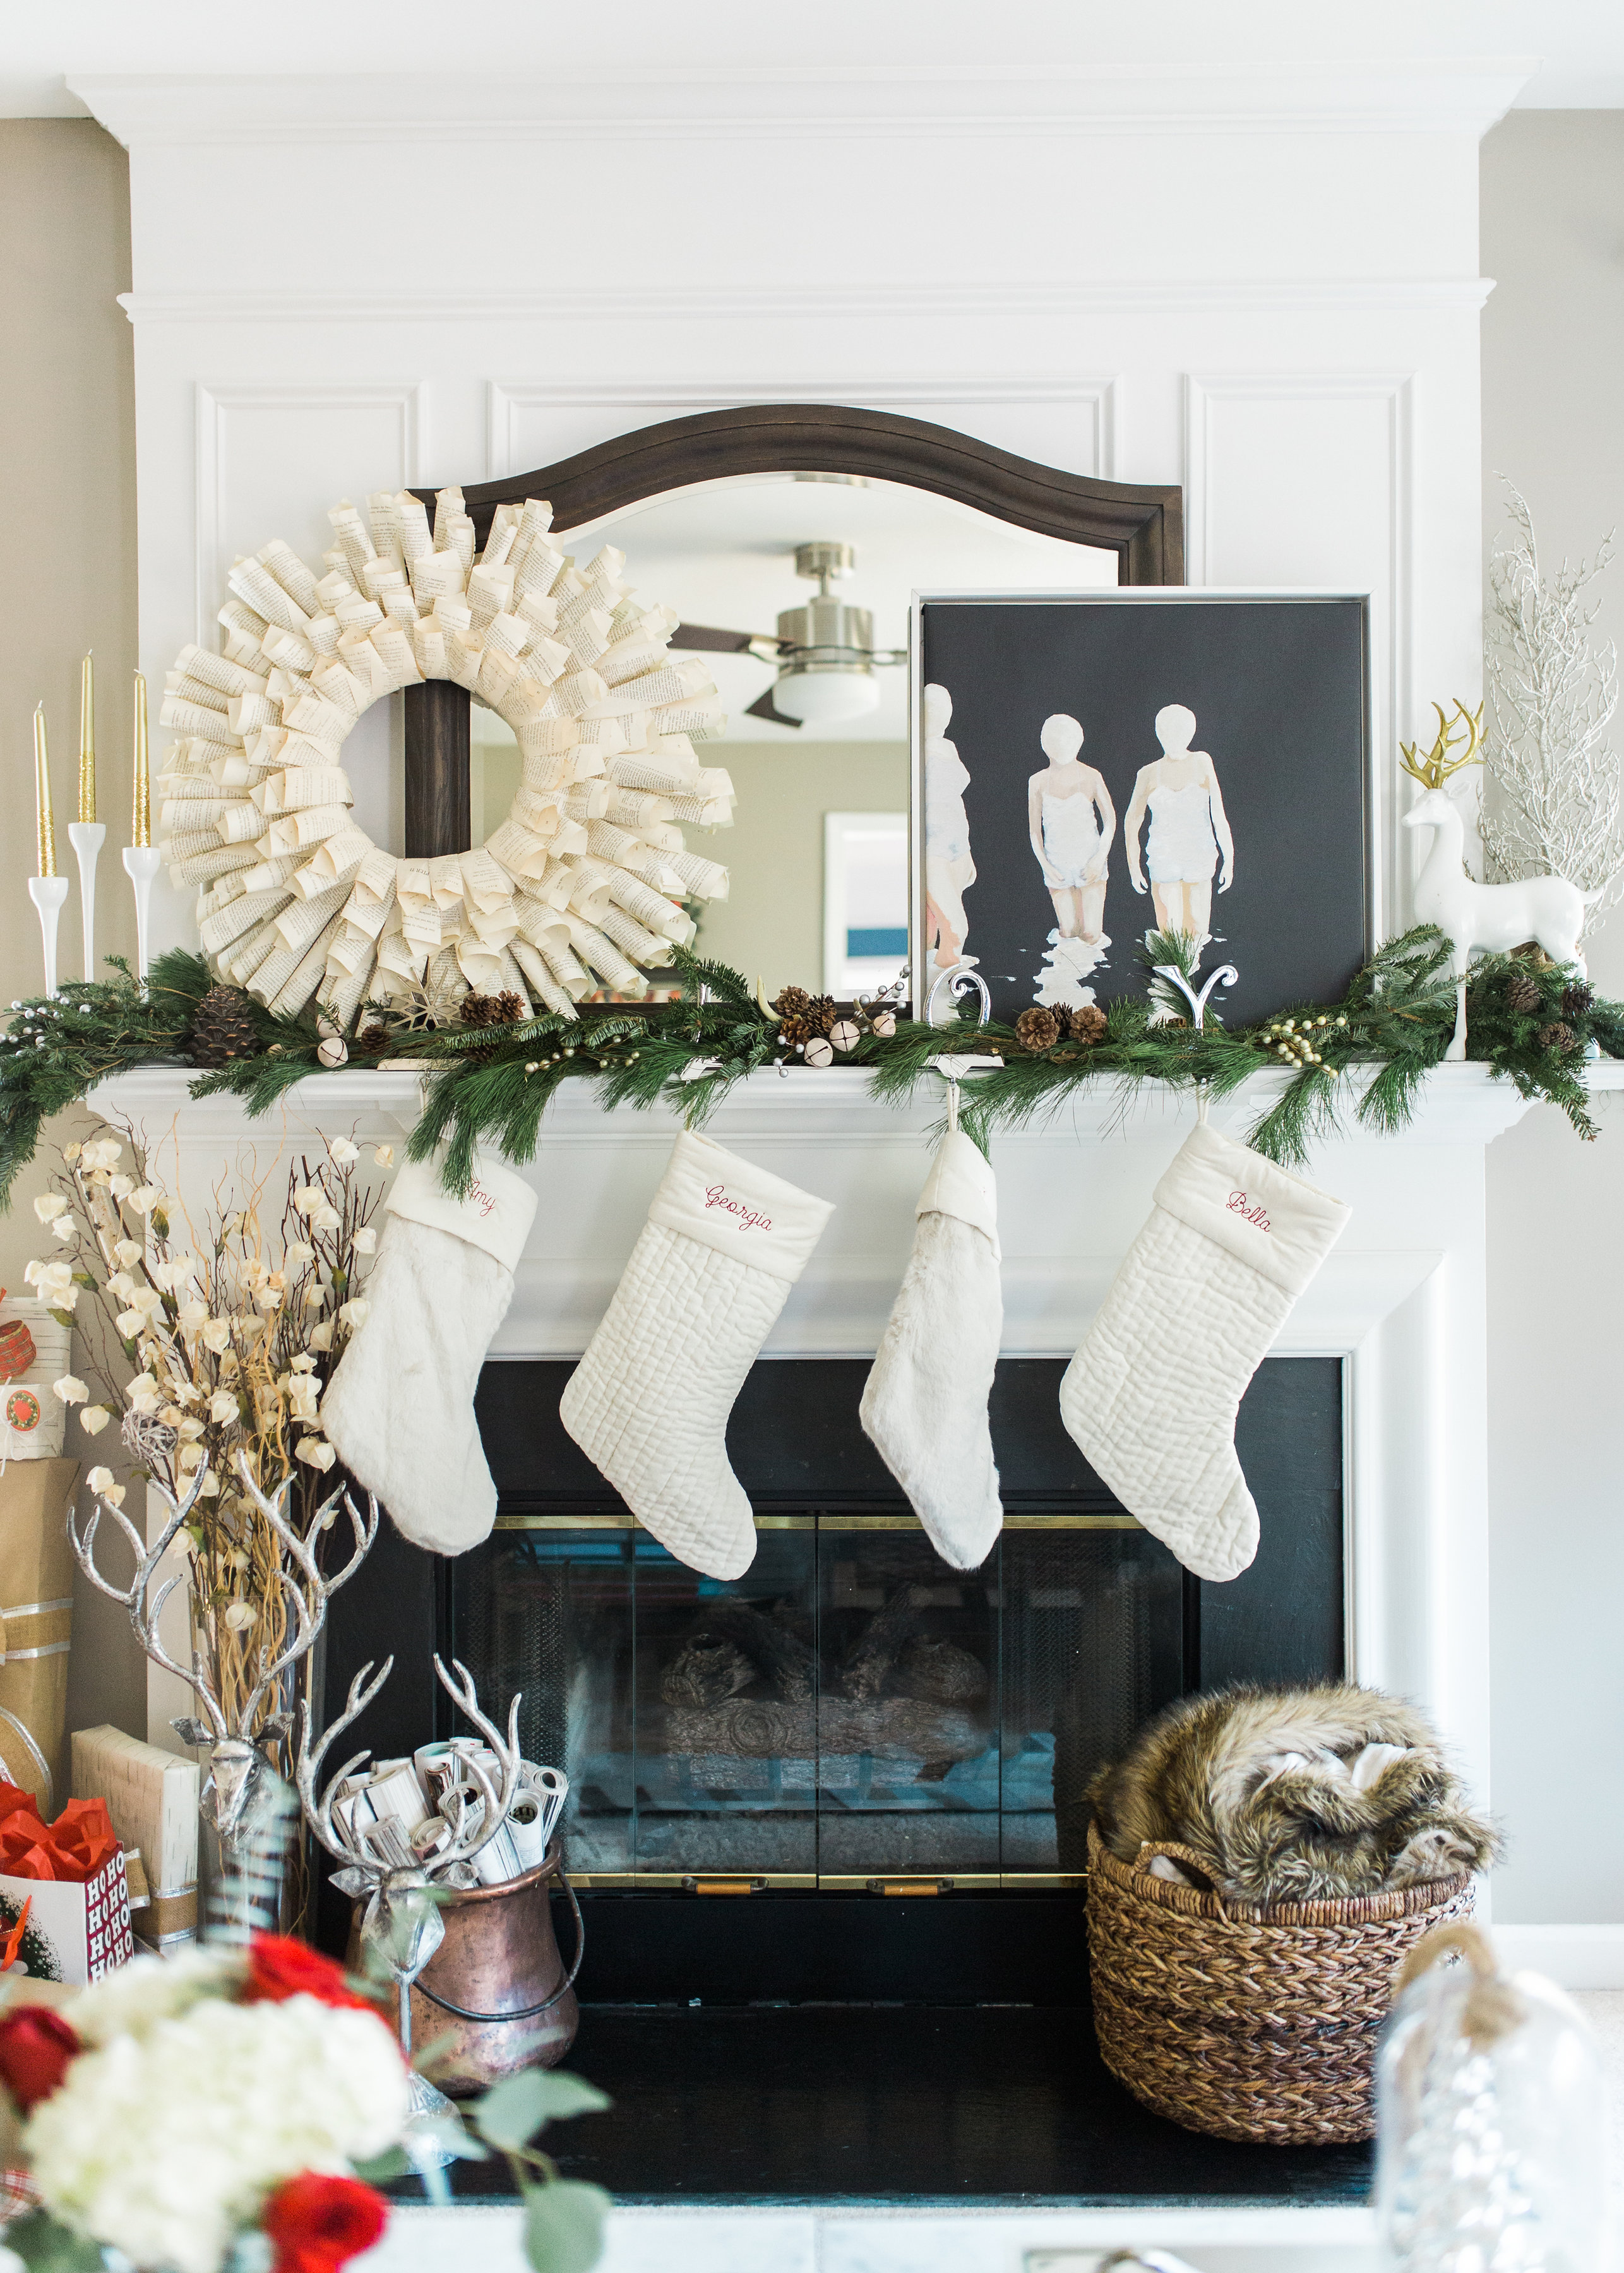 Our Christmas Home Decor by North Carolina style blogger Coffee Beans and Bobby Pins